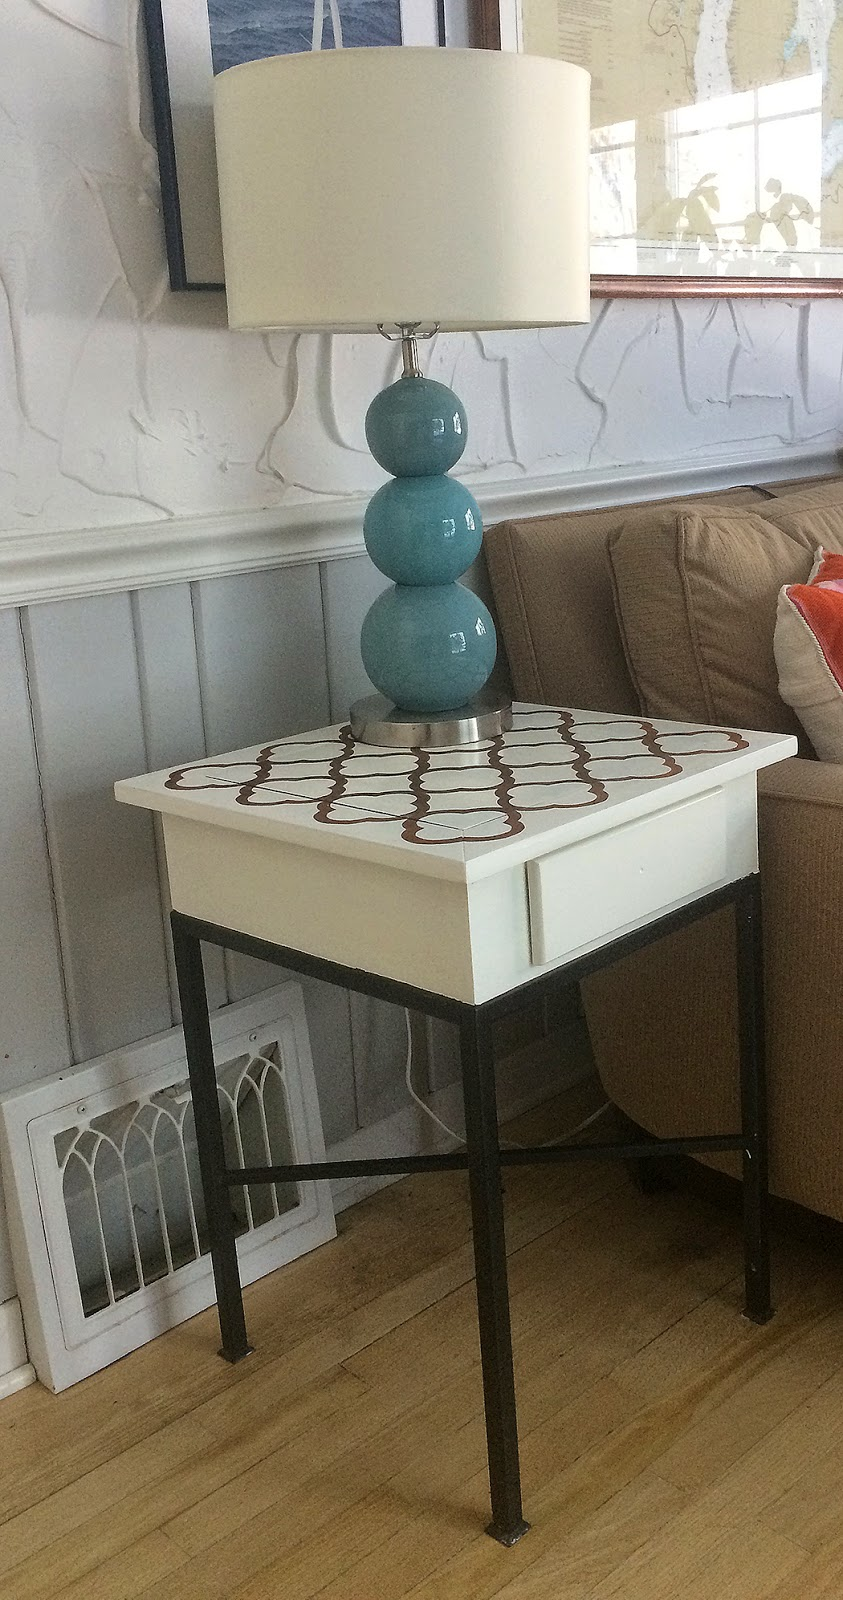 DIY paint/stain table